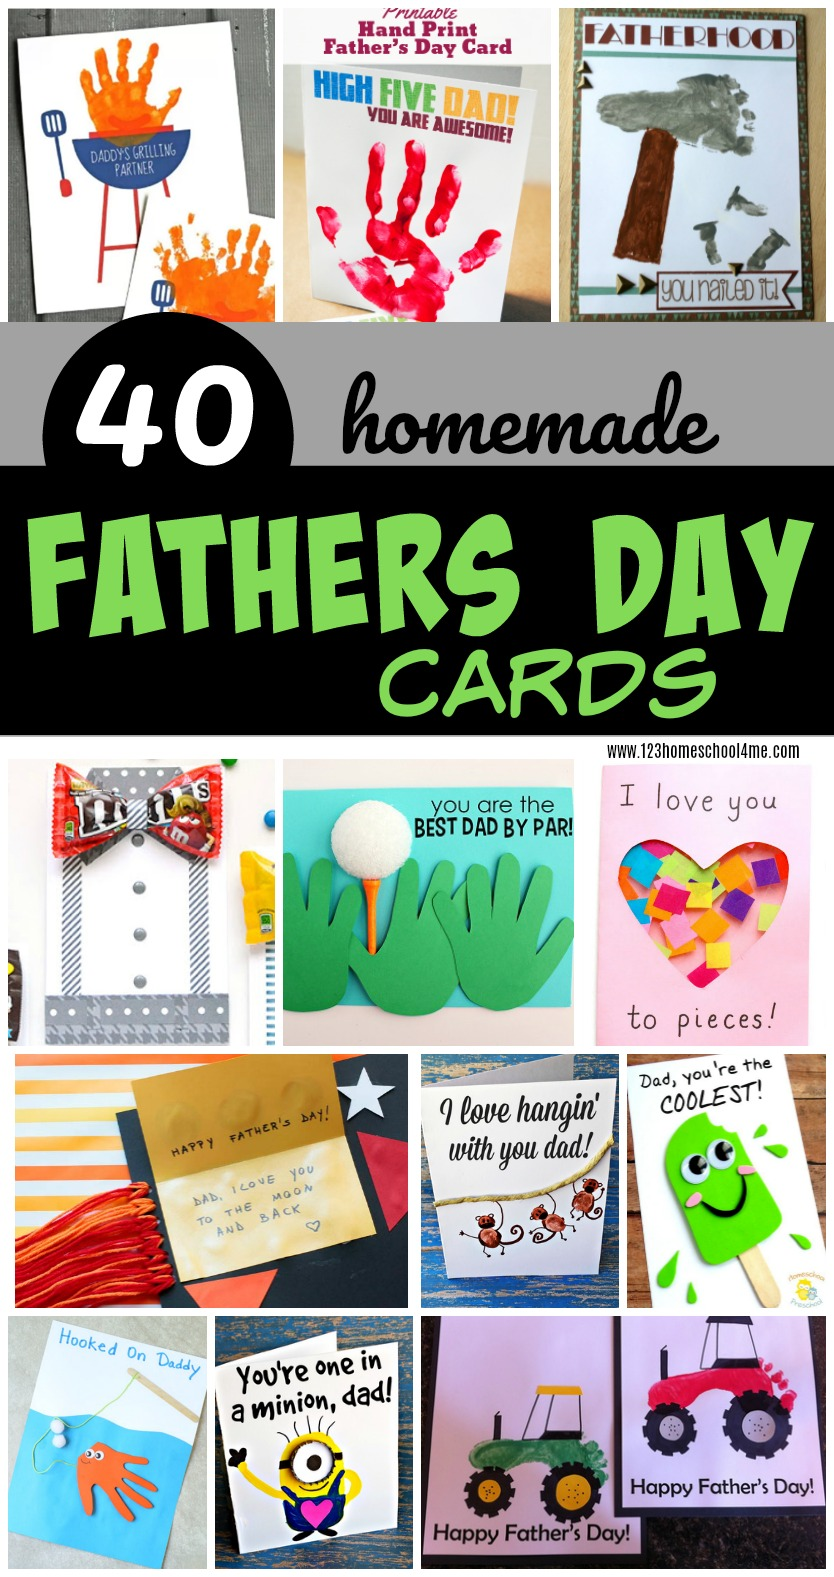 40 homemade fathers day cards